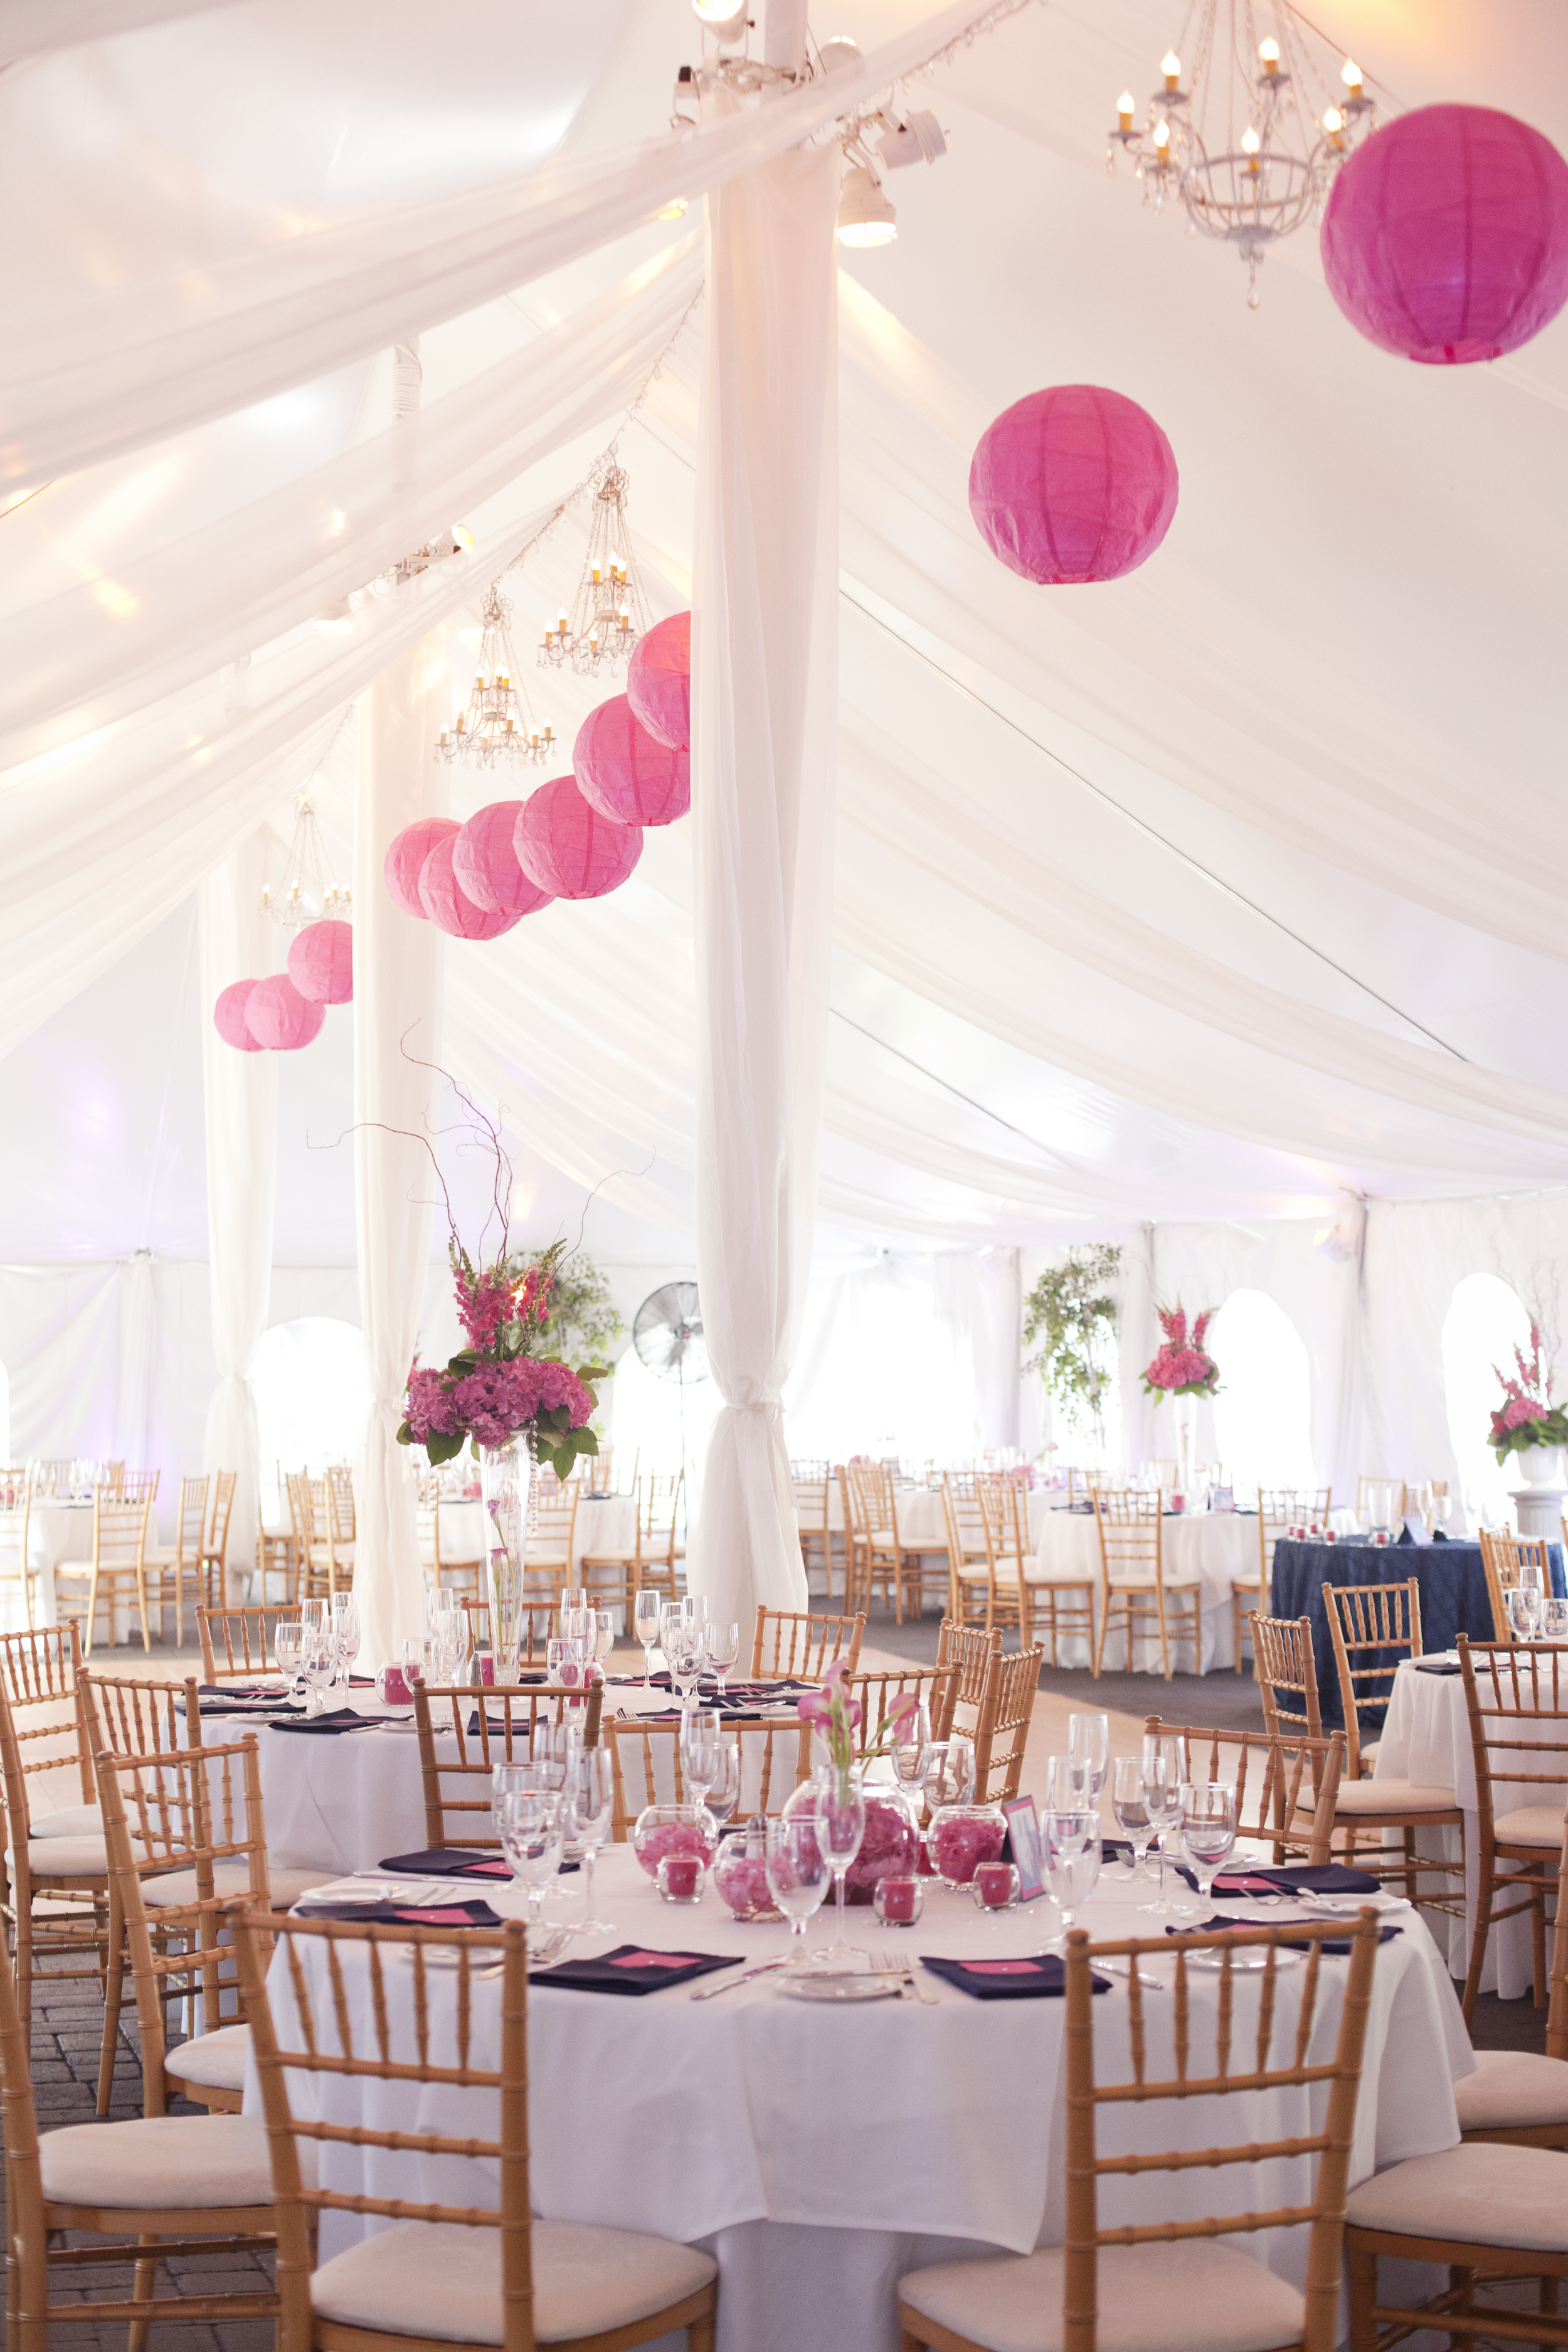 A light and airy reception tent waits for guests to have dinner and dance the night away!